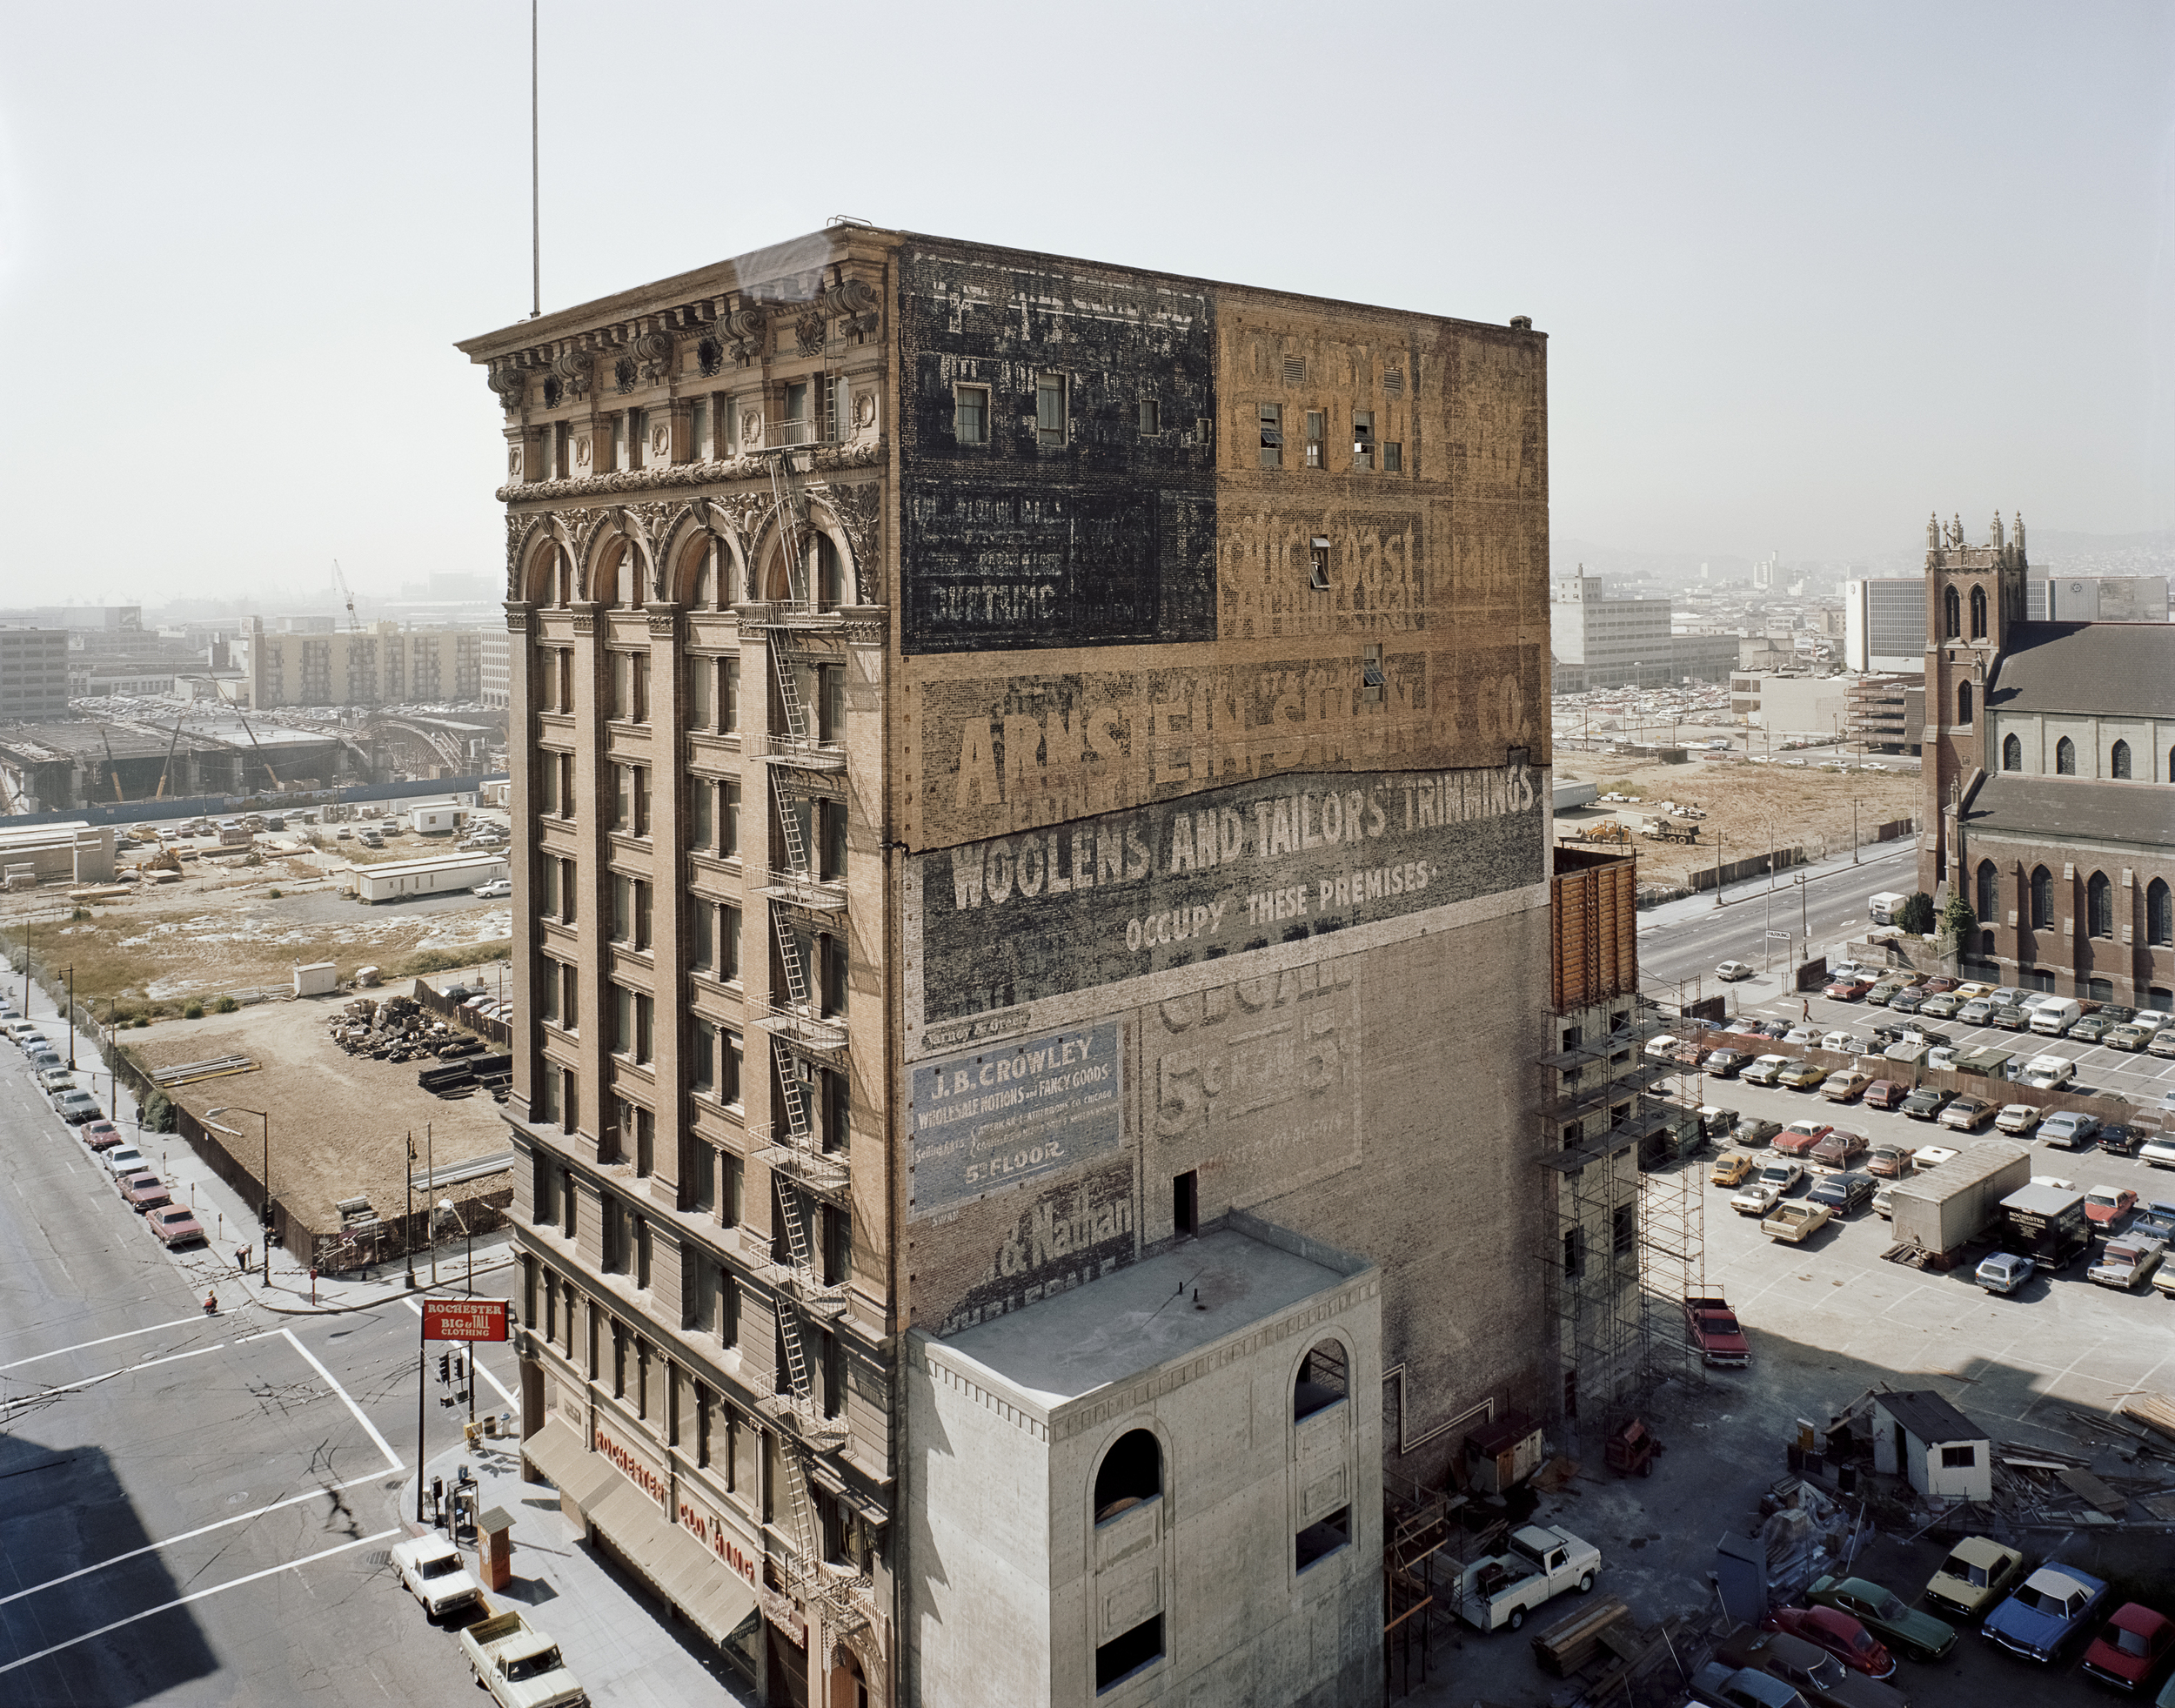 JANET DELANEY Mercantile Building, Mission and 3rd Streets, 1980 Archival Pigment Print, 2016 16 x 20 inches, edition of 5 20 x 24 inches, edition of 2 30 x 40 inches, edition of 2